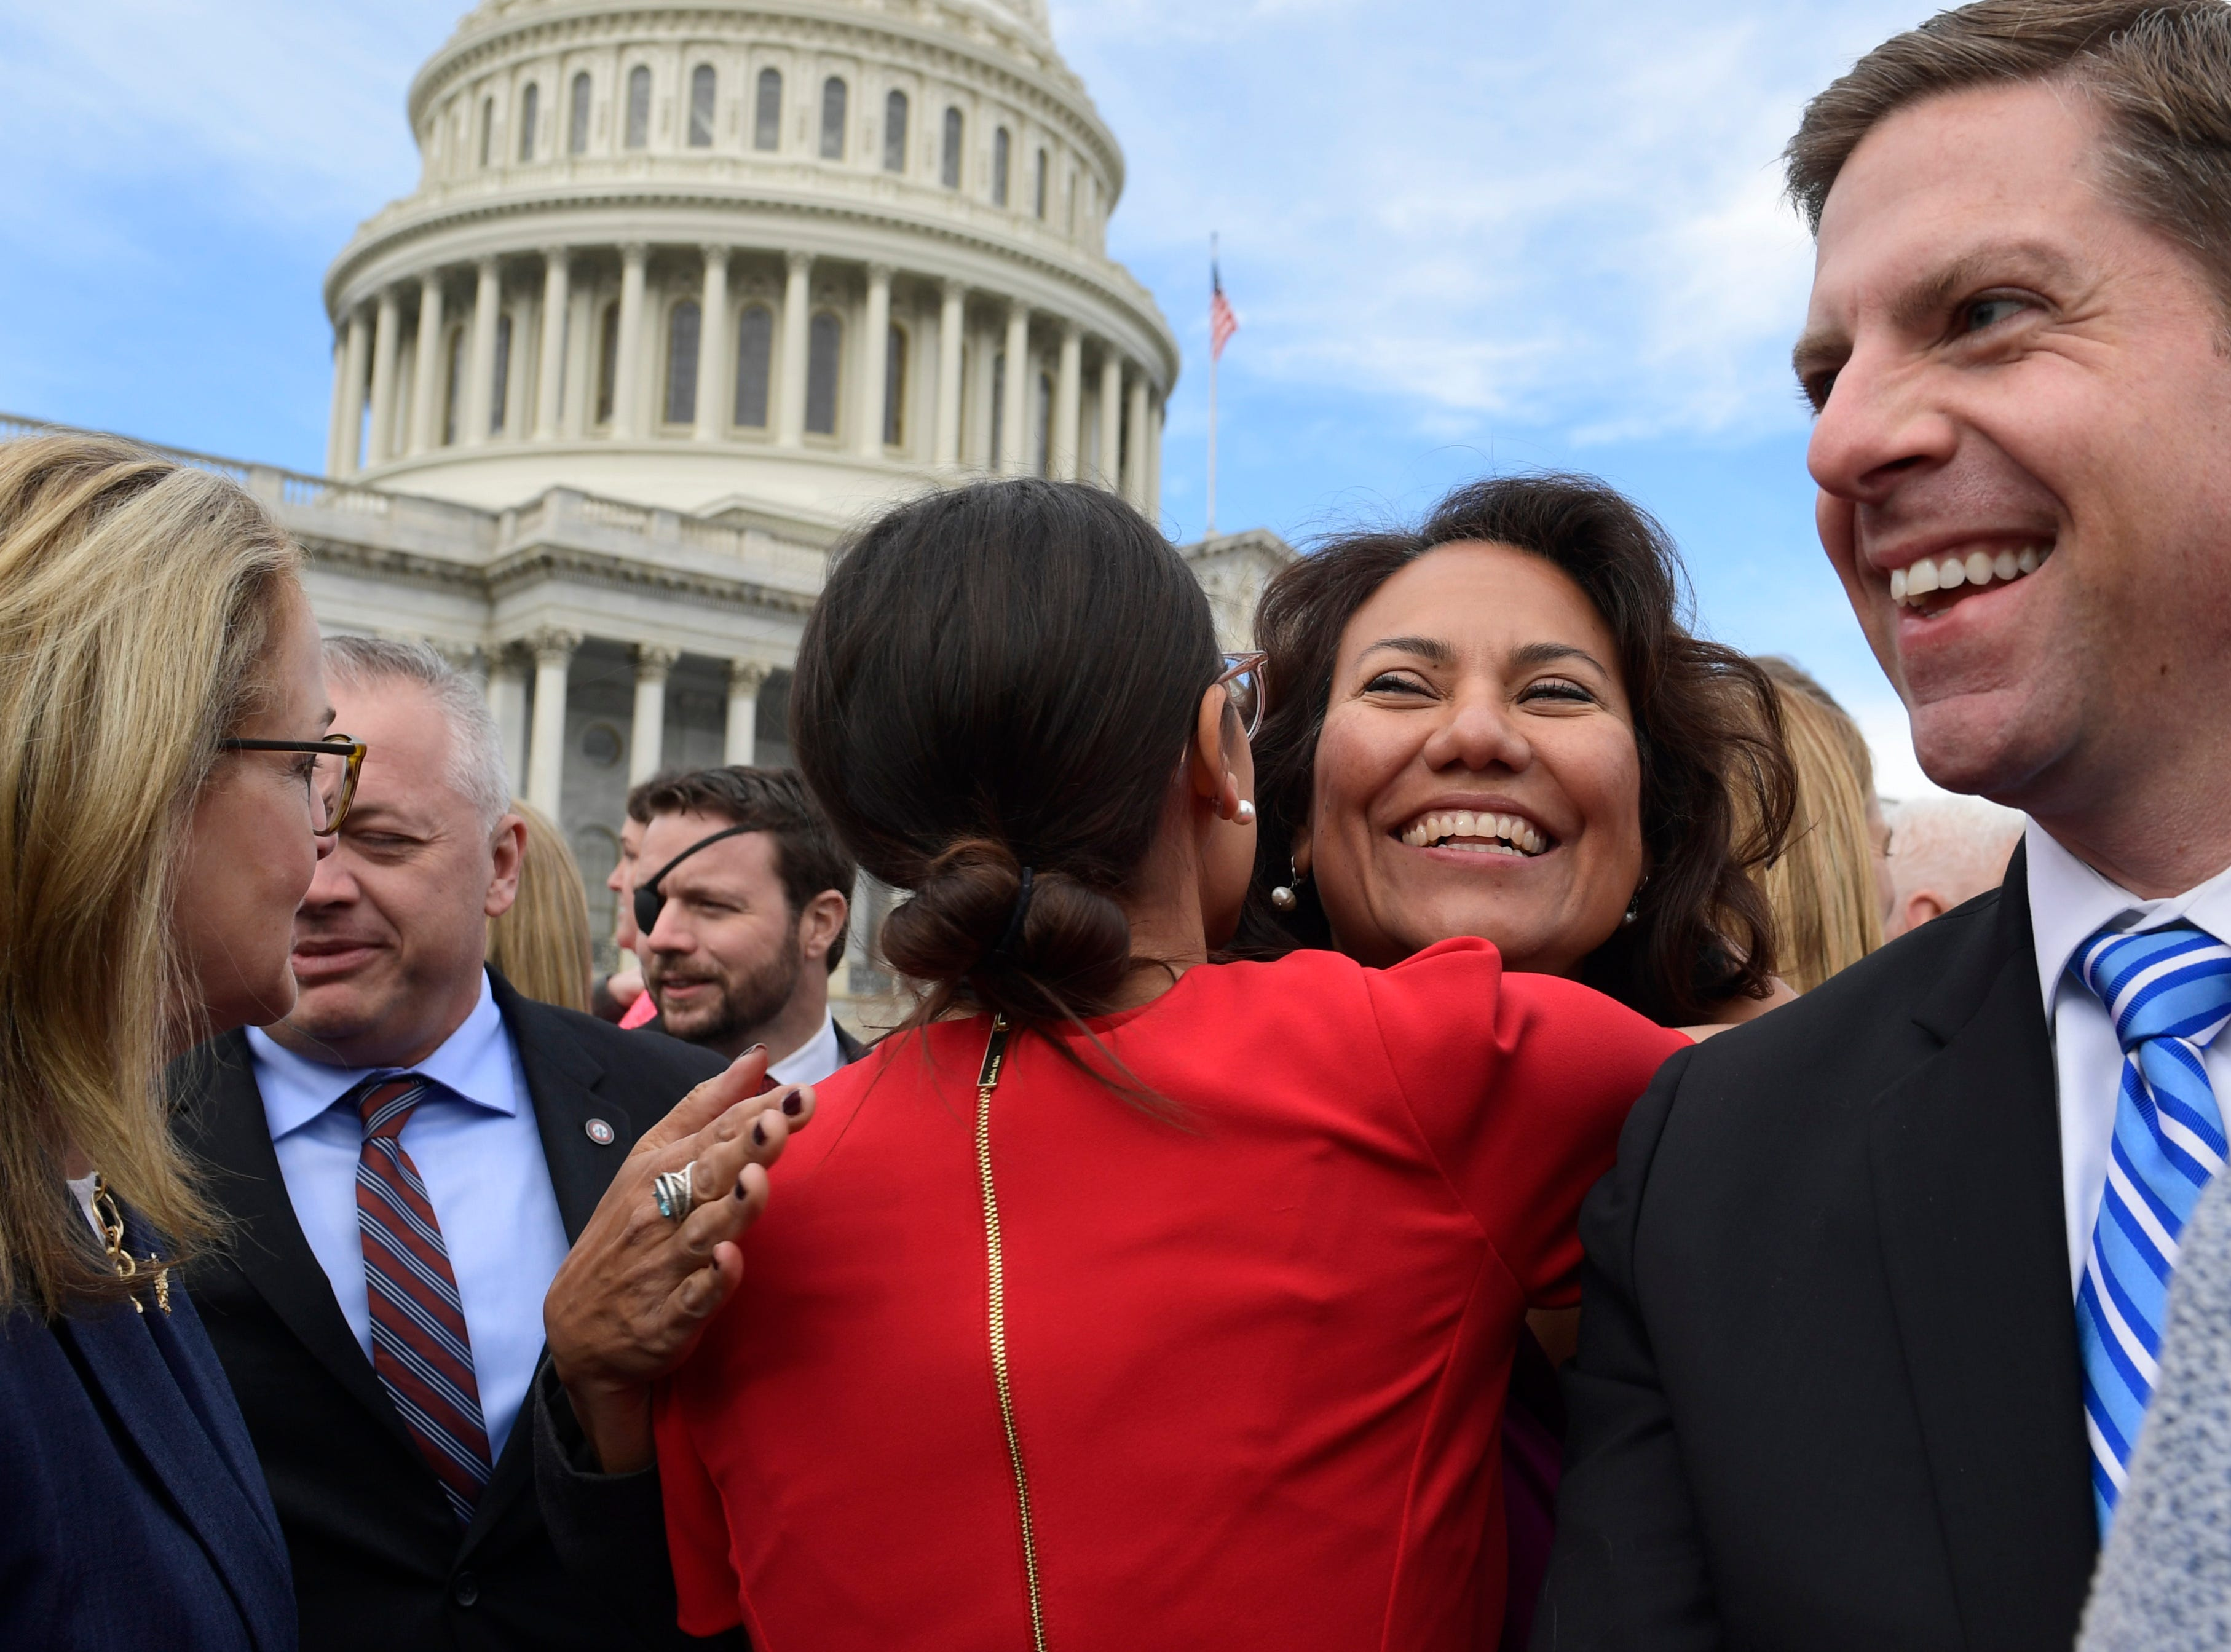 U.S. Rep.-elect Alexandria Ocasio-Cortez, D-N.Y., center in red, gets a hug from U.S. Rep.-elect Veronica Escobar, D-El Paso, on Wednesday, Nov. 14, 2018, after a photo opportunity with the freshman class on Capitol Hill in Washington, D.C.